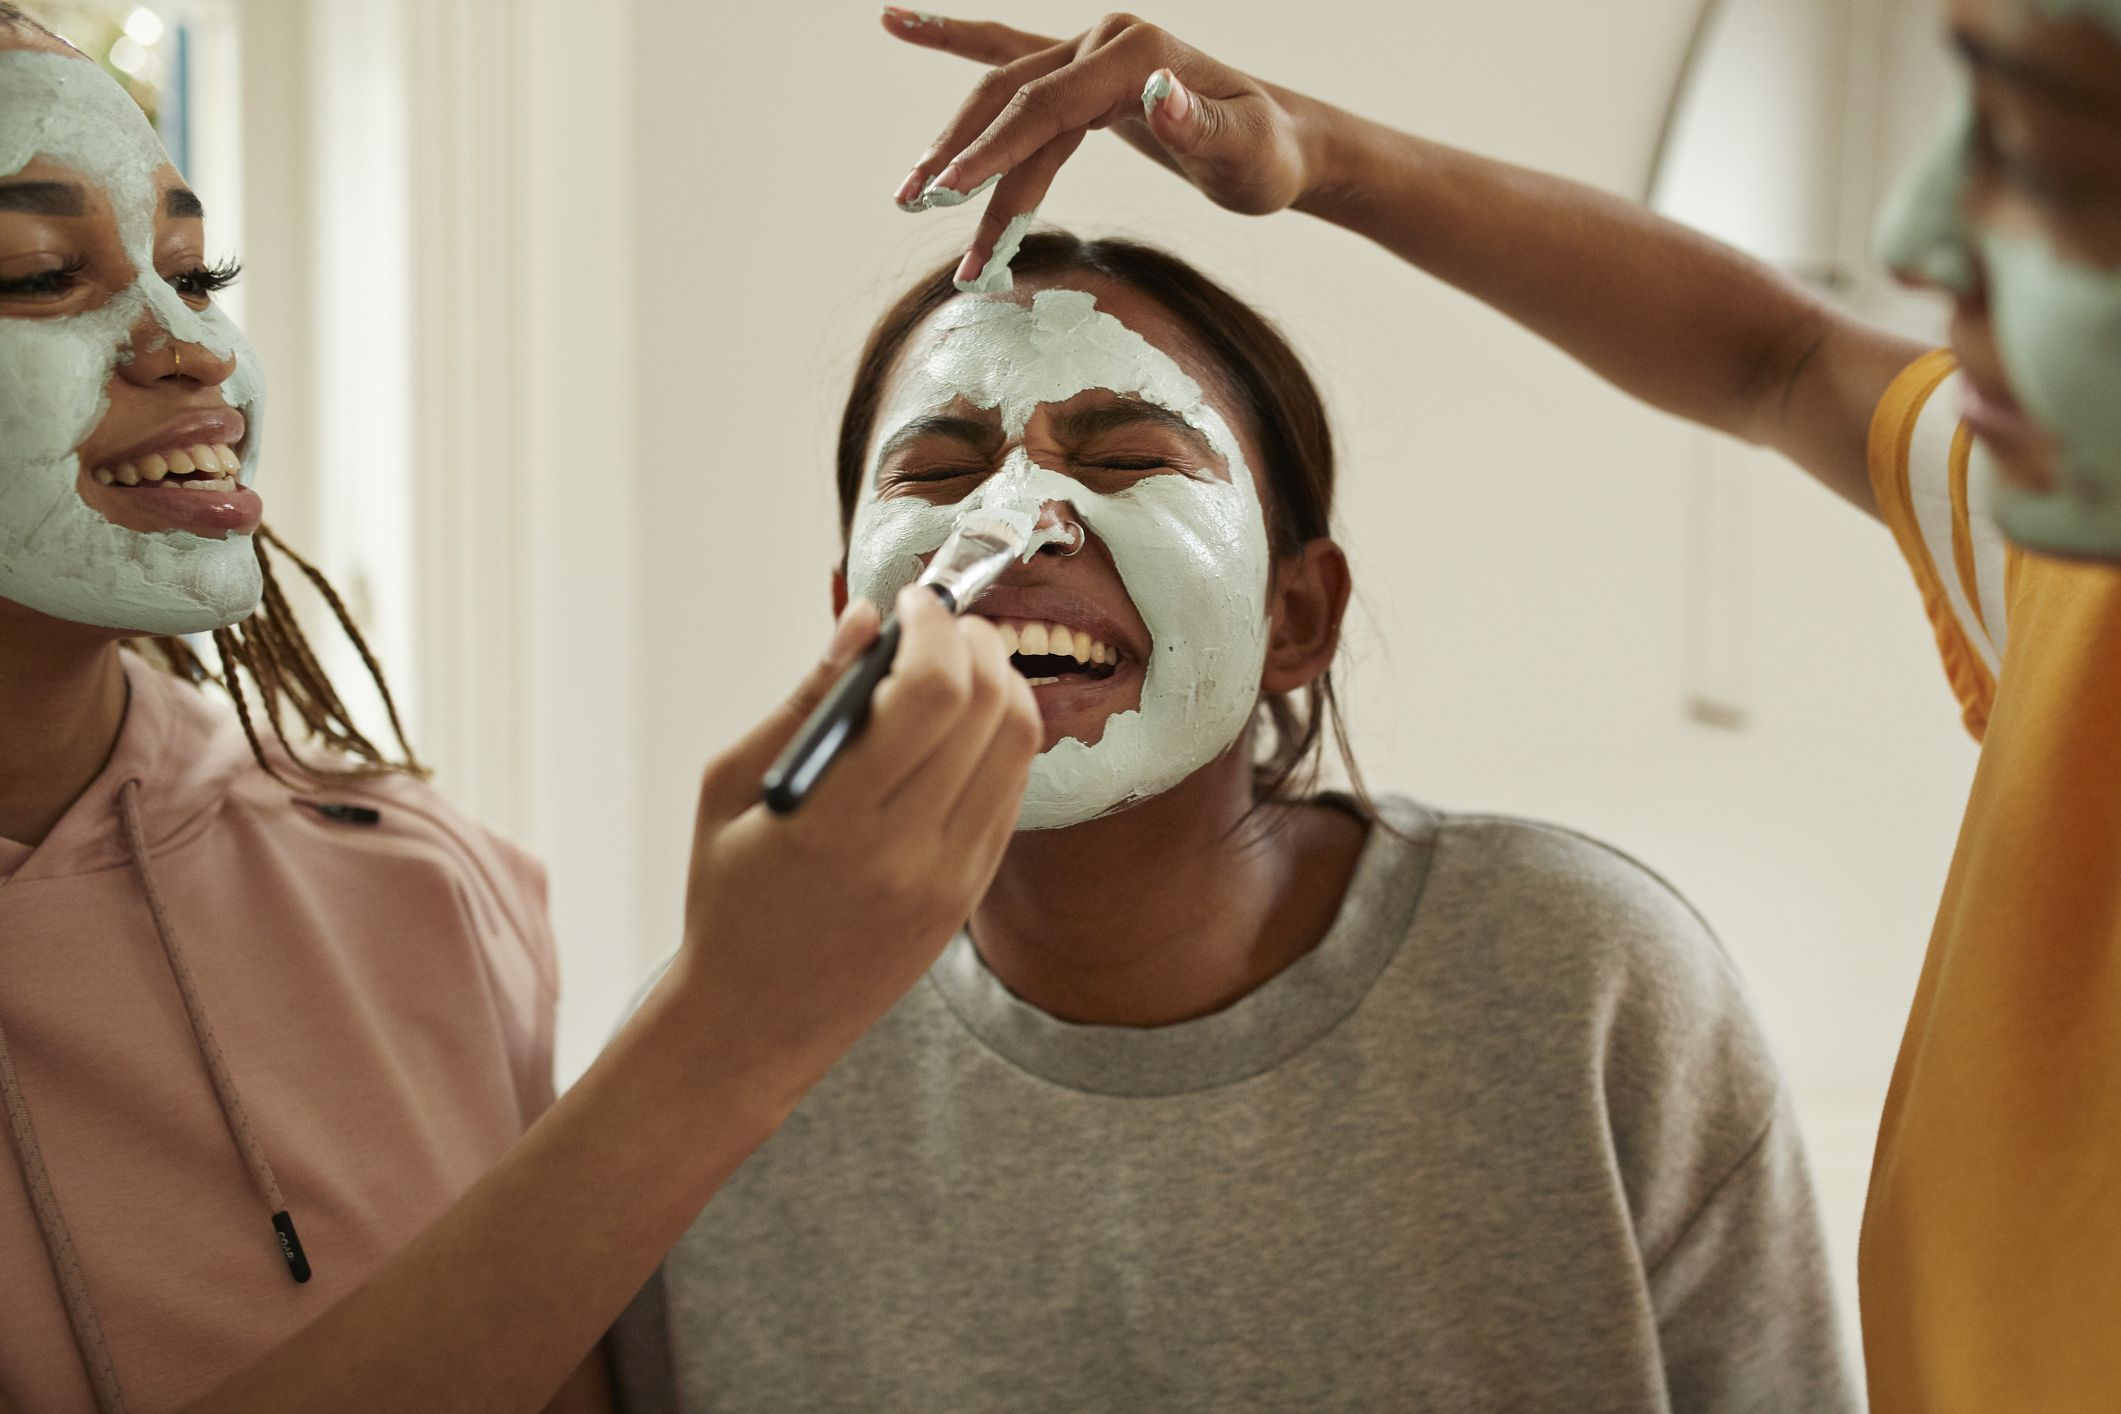 How to Give Yourself a Spa-Like Facial at Home